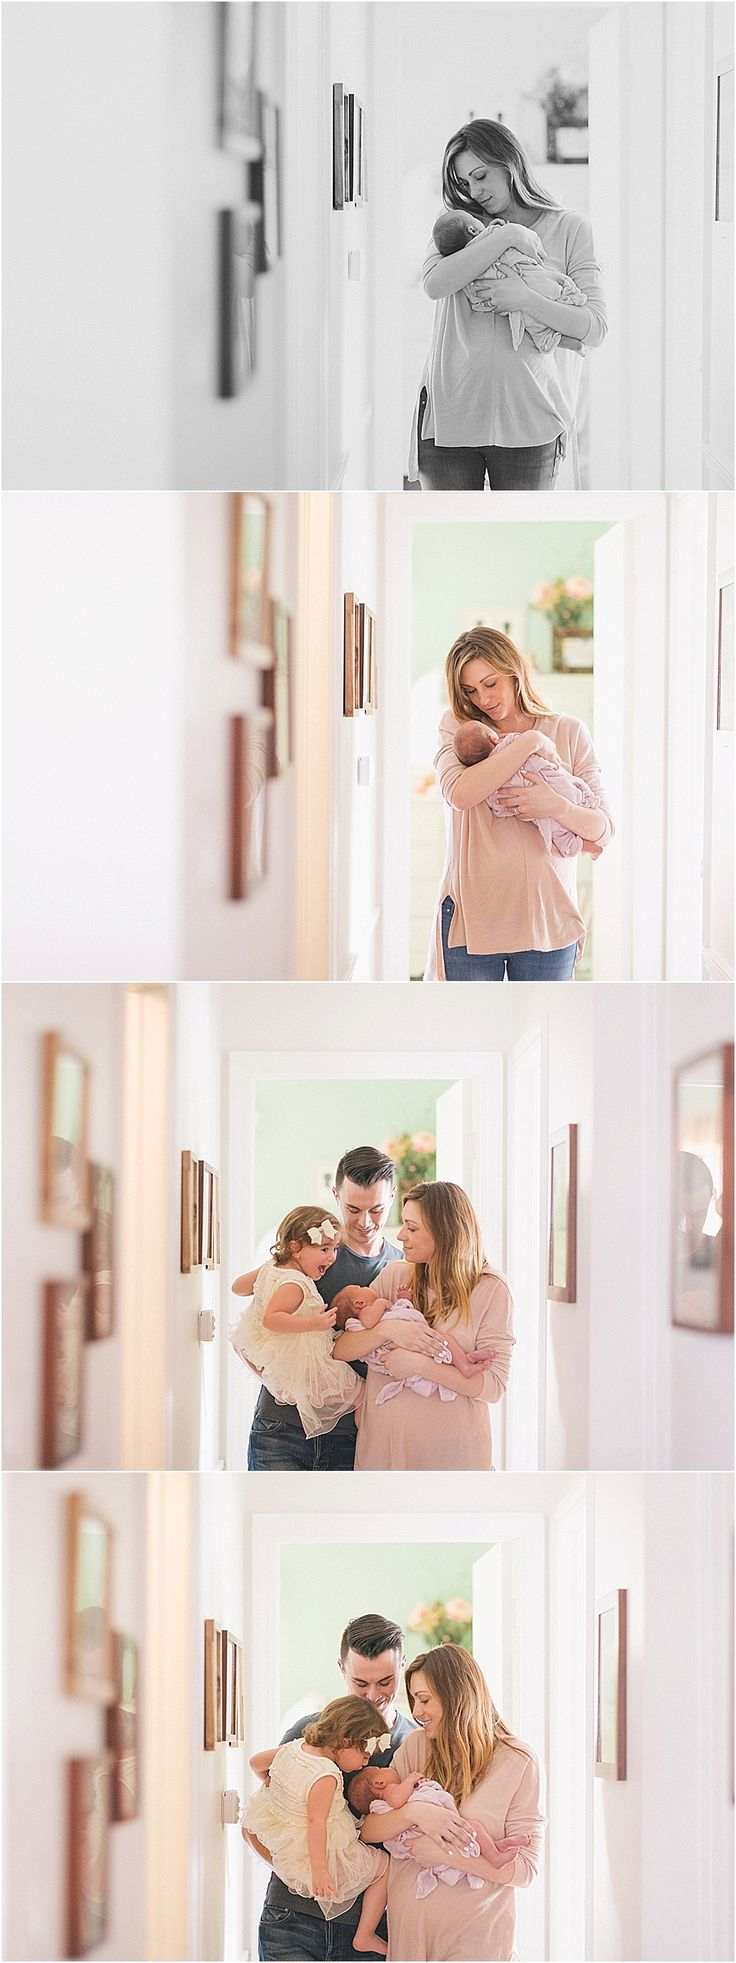 Newborn lifestyle photography.- Neutrals || if you just can't stand not adding color make sure and stick to pastels